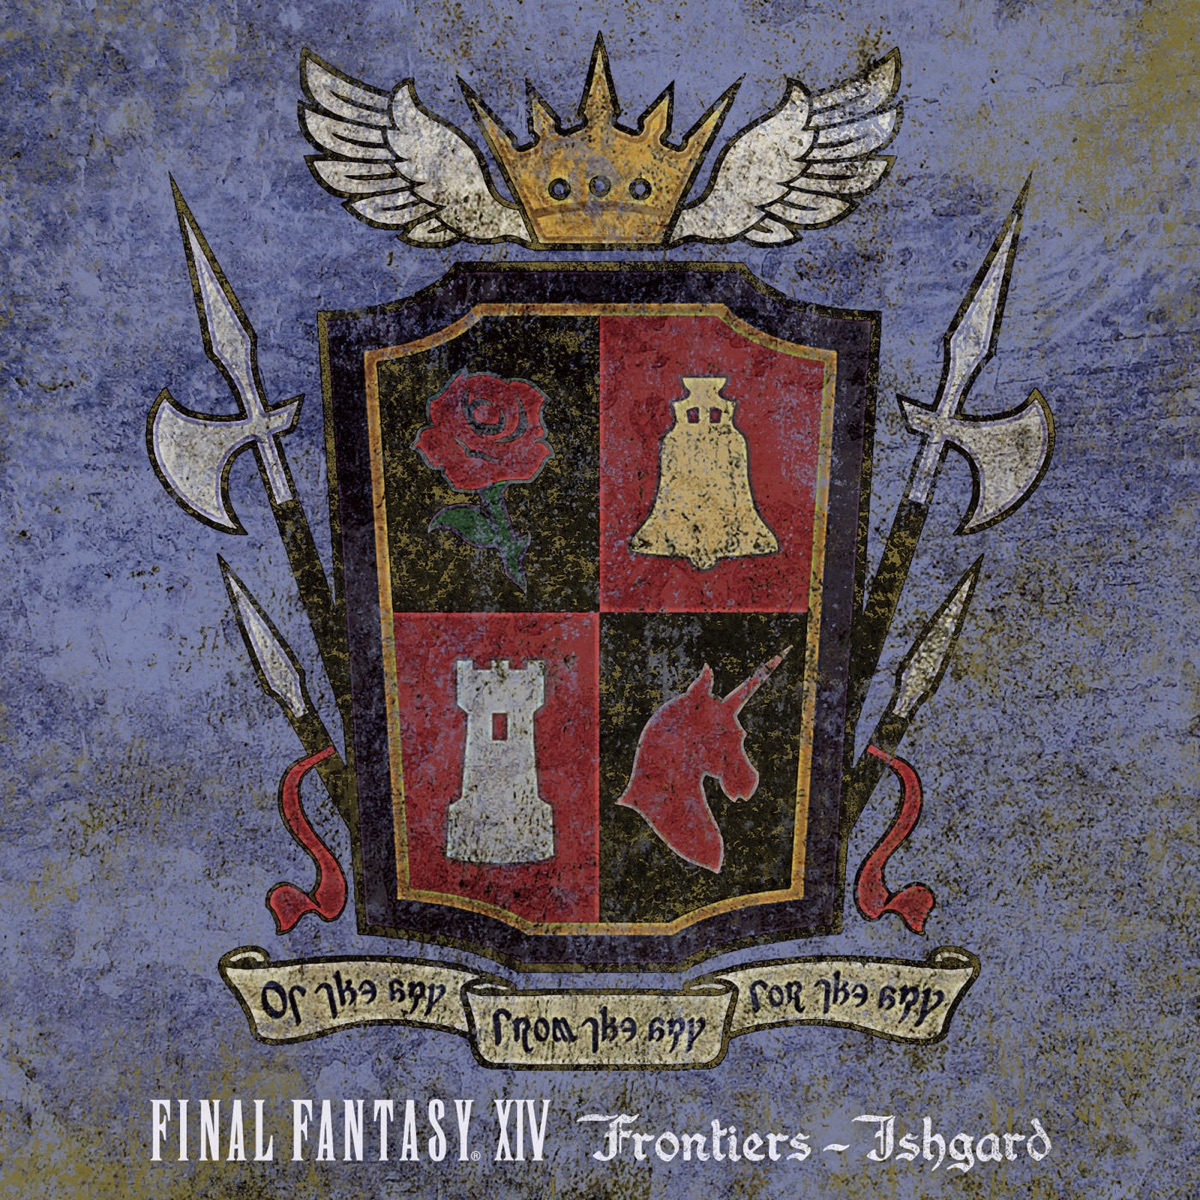 FINAL FANTASY XIV Frontiers - Ishgard Album Cover by Square Enix Music